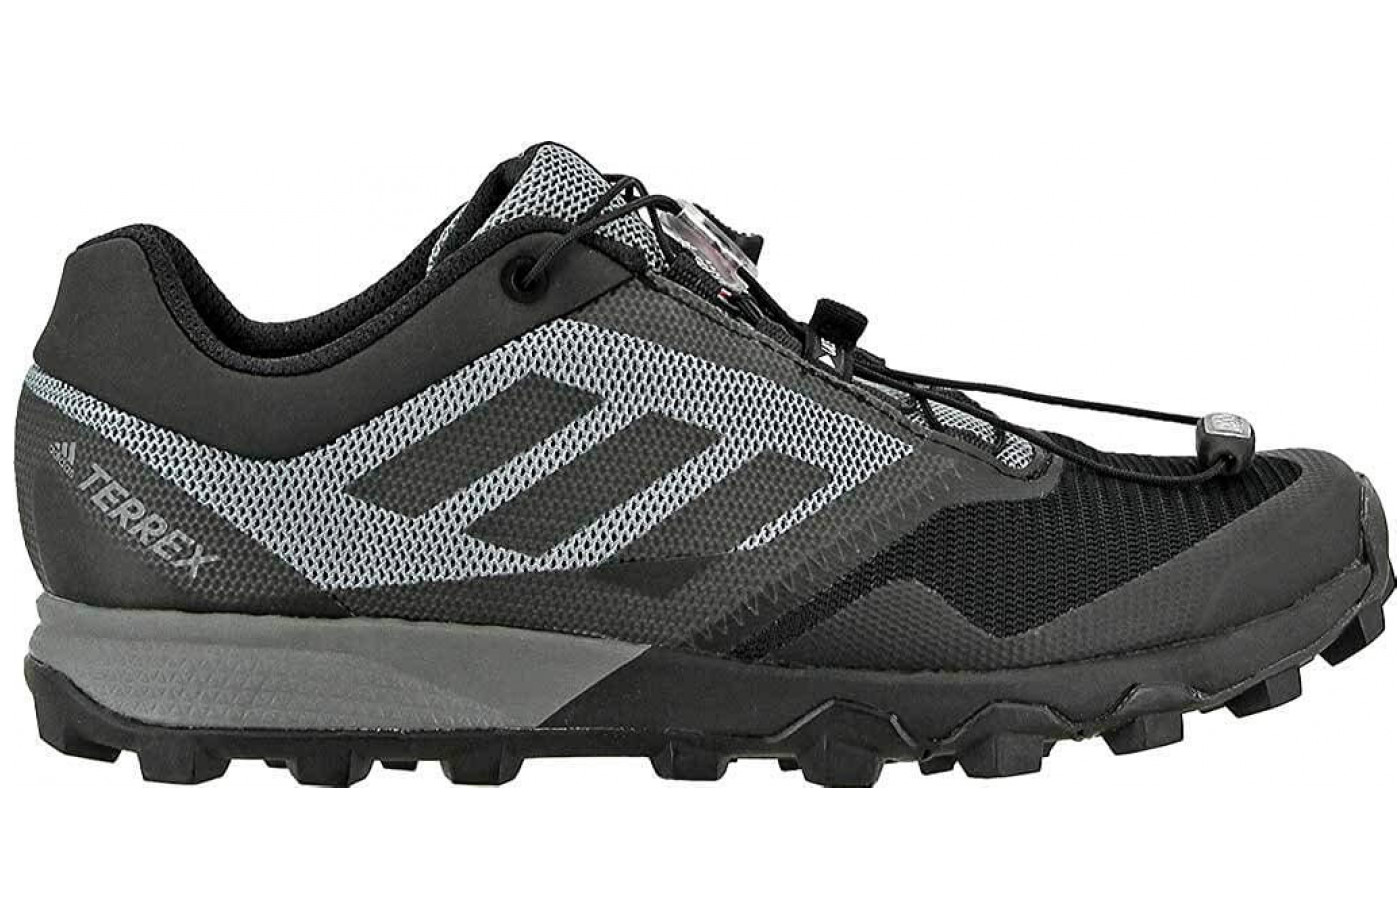 The Adidas Terrex TrailMaker features a dual mesh upper.